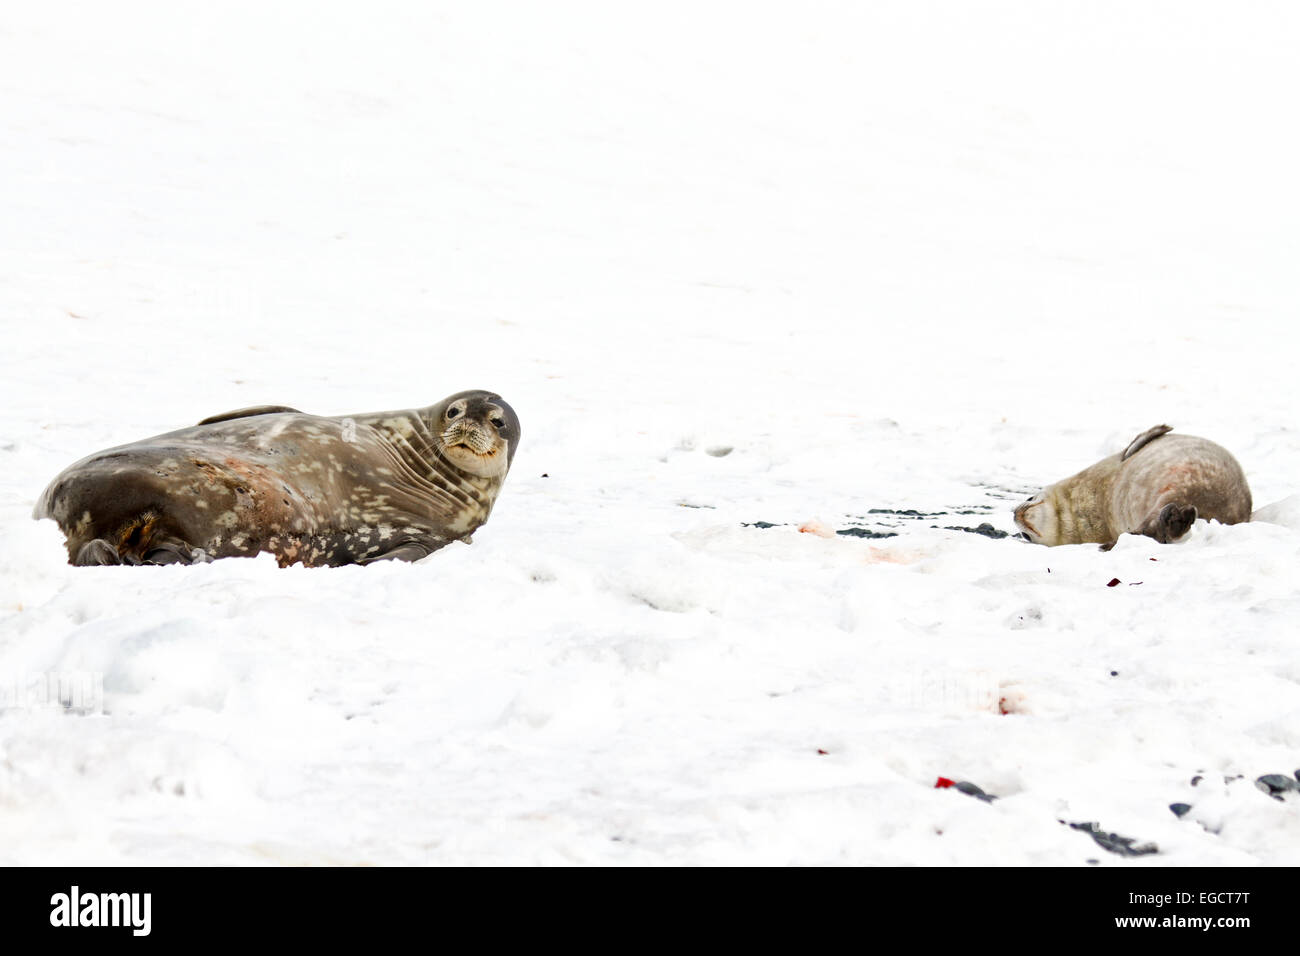 Weddell seals (Leptonychotes weddellii). Young pup lying on sea ice. Weddell seals are born singly. They have fine - Stock Image